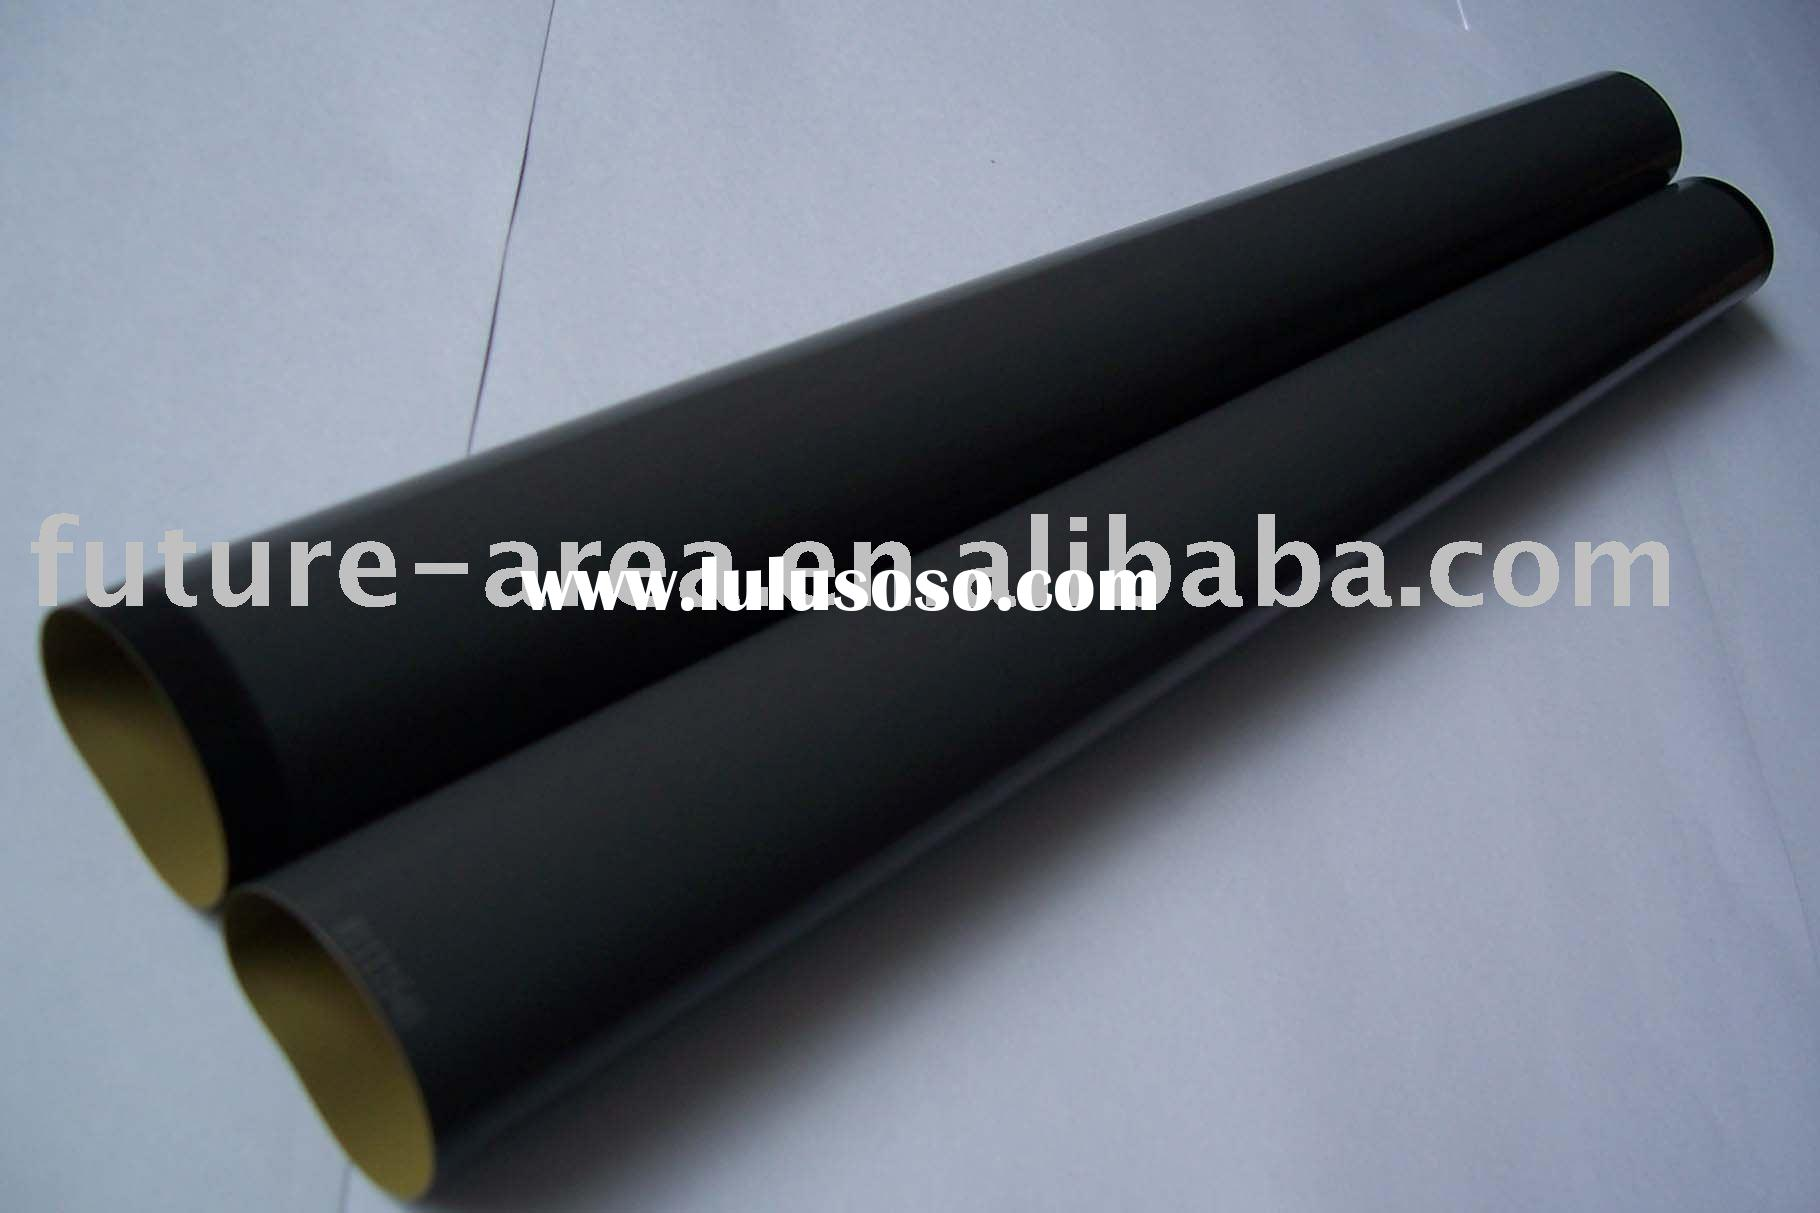 Fuser Film Sleeve (FFS),fusre film,film sleeve,printer fuser film,printer film,teflon fuser film for